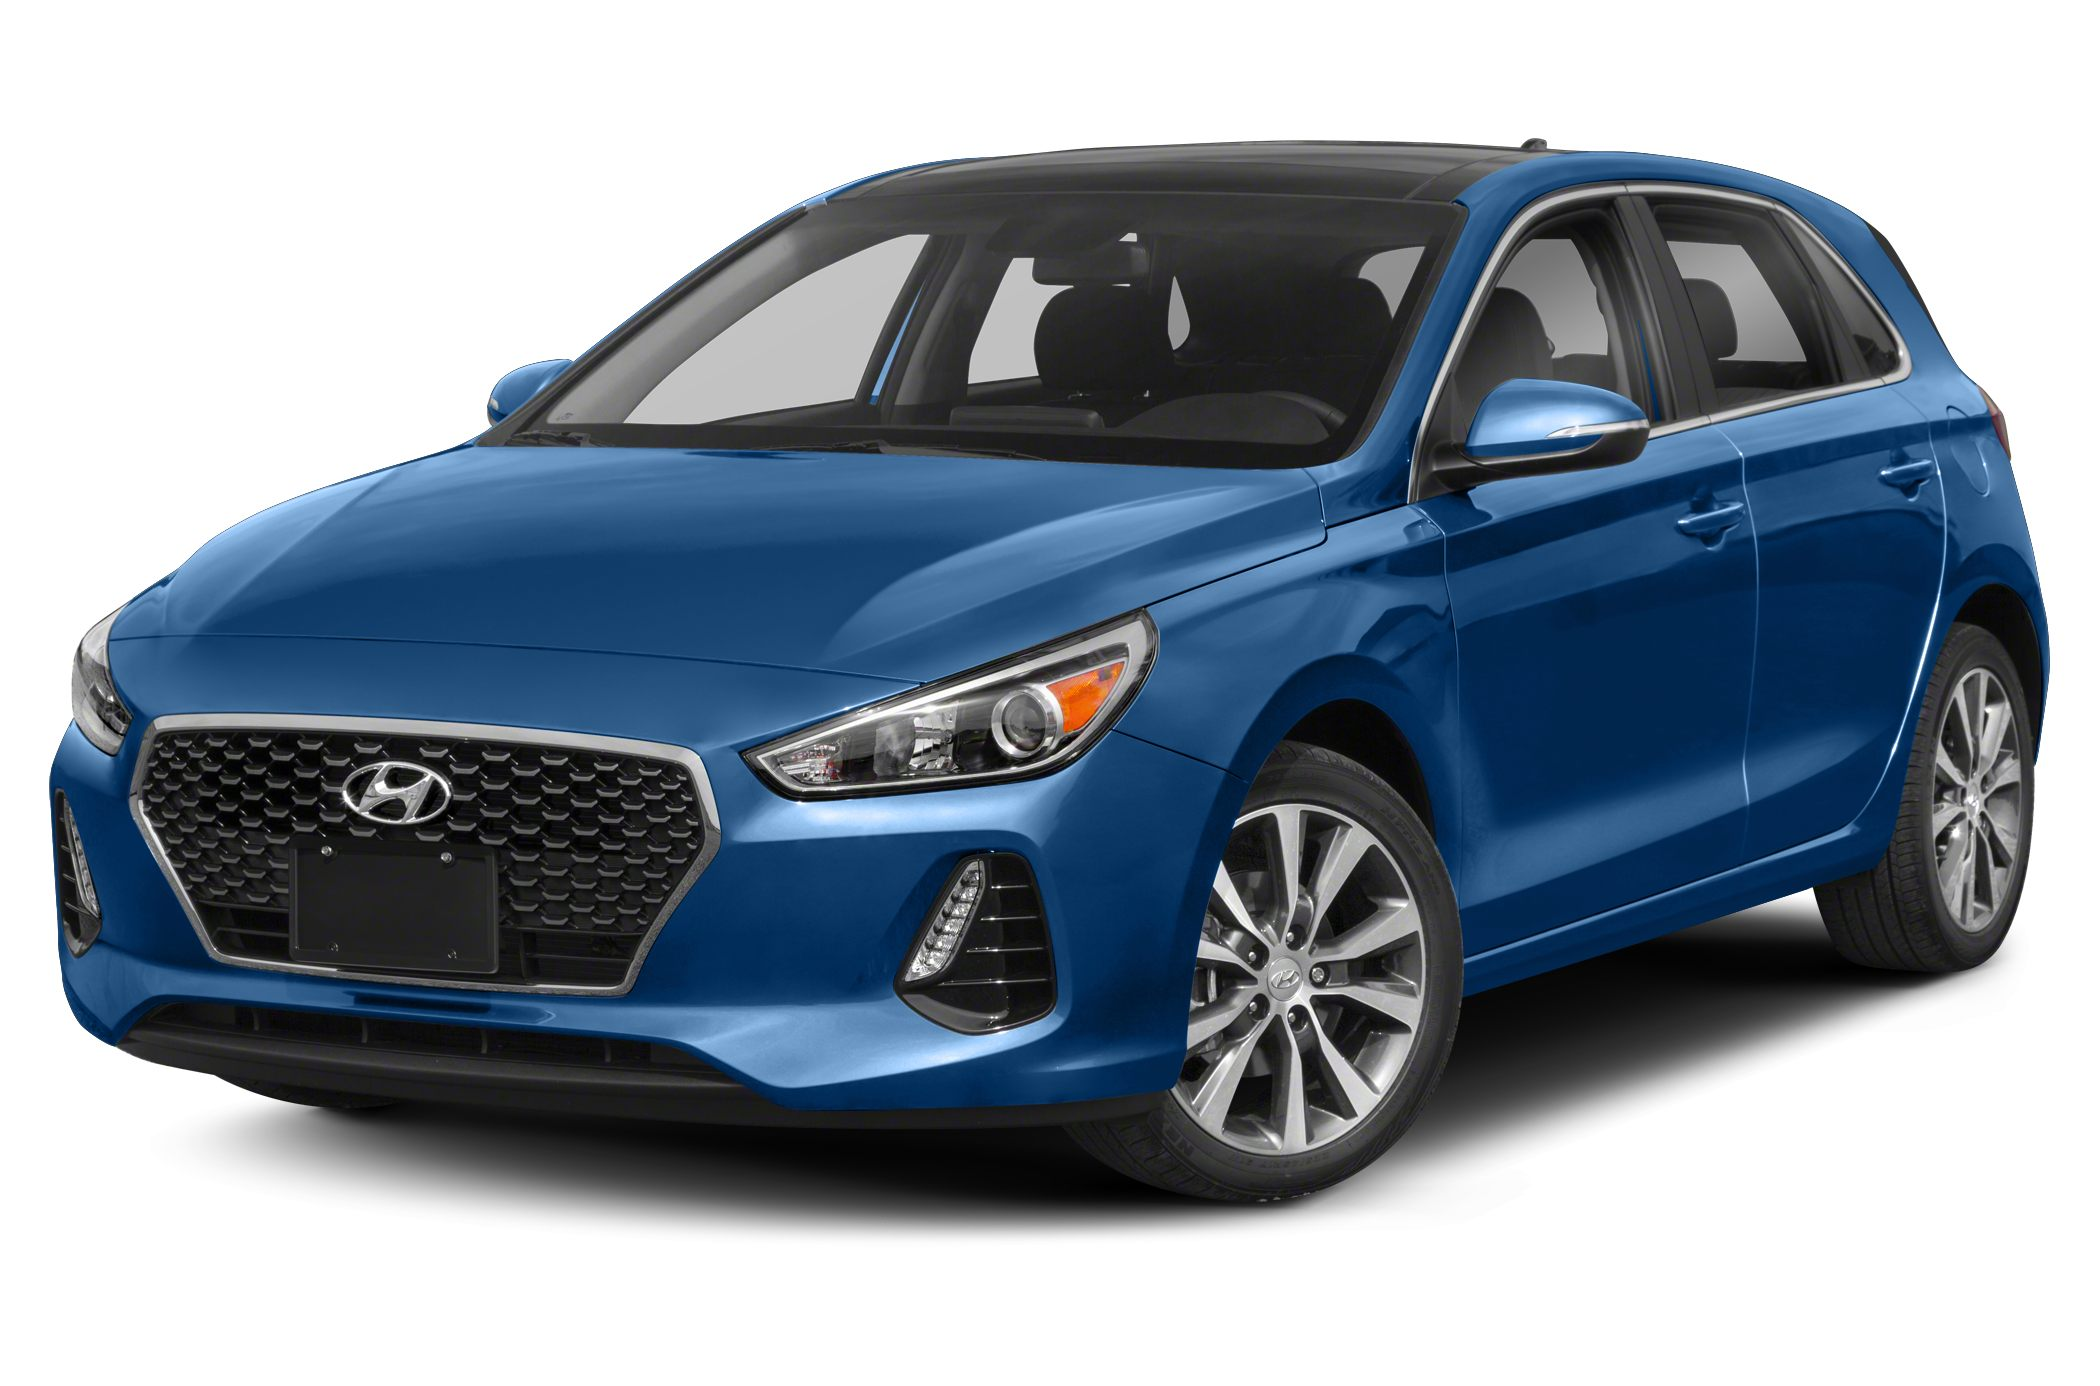 Hyundai Canada Incentives for the new 2019 Hyundai Elantra GT in Milton, Toronto, and the GTA